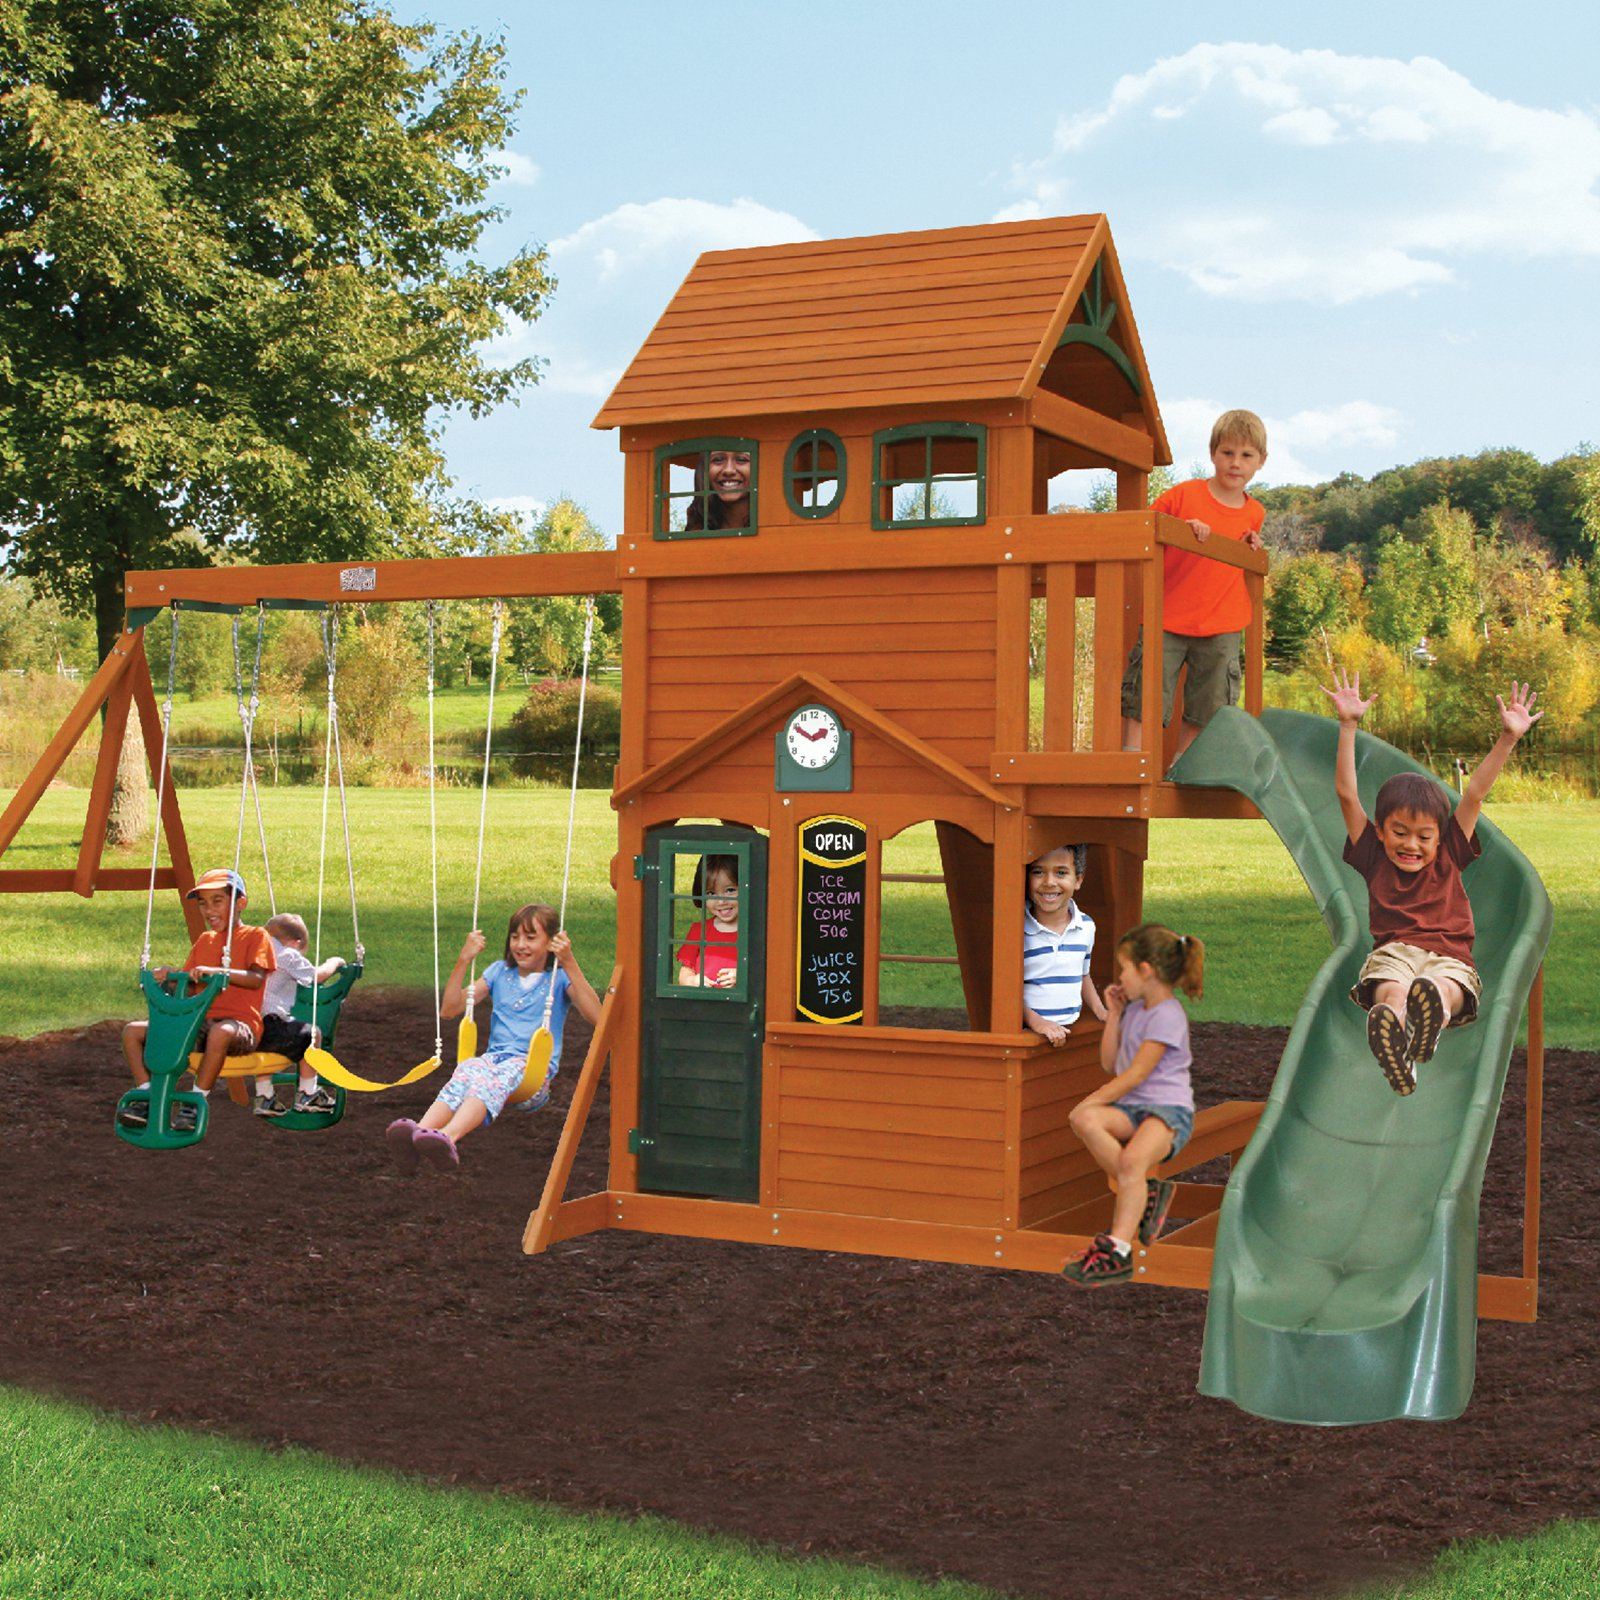 Big Backyard Ashberry II Swing Set - Walmart.com - Walmart.com